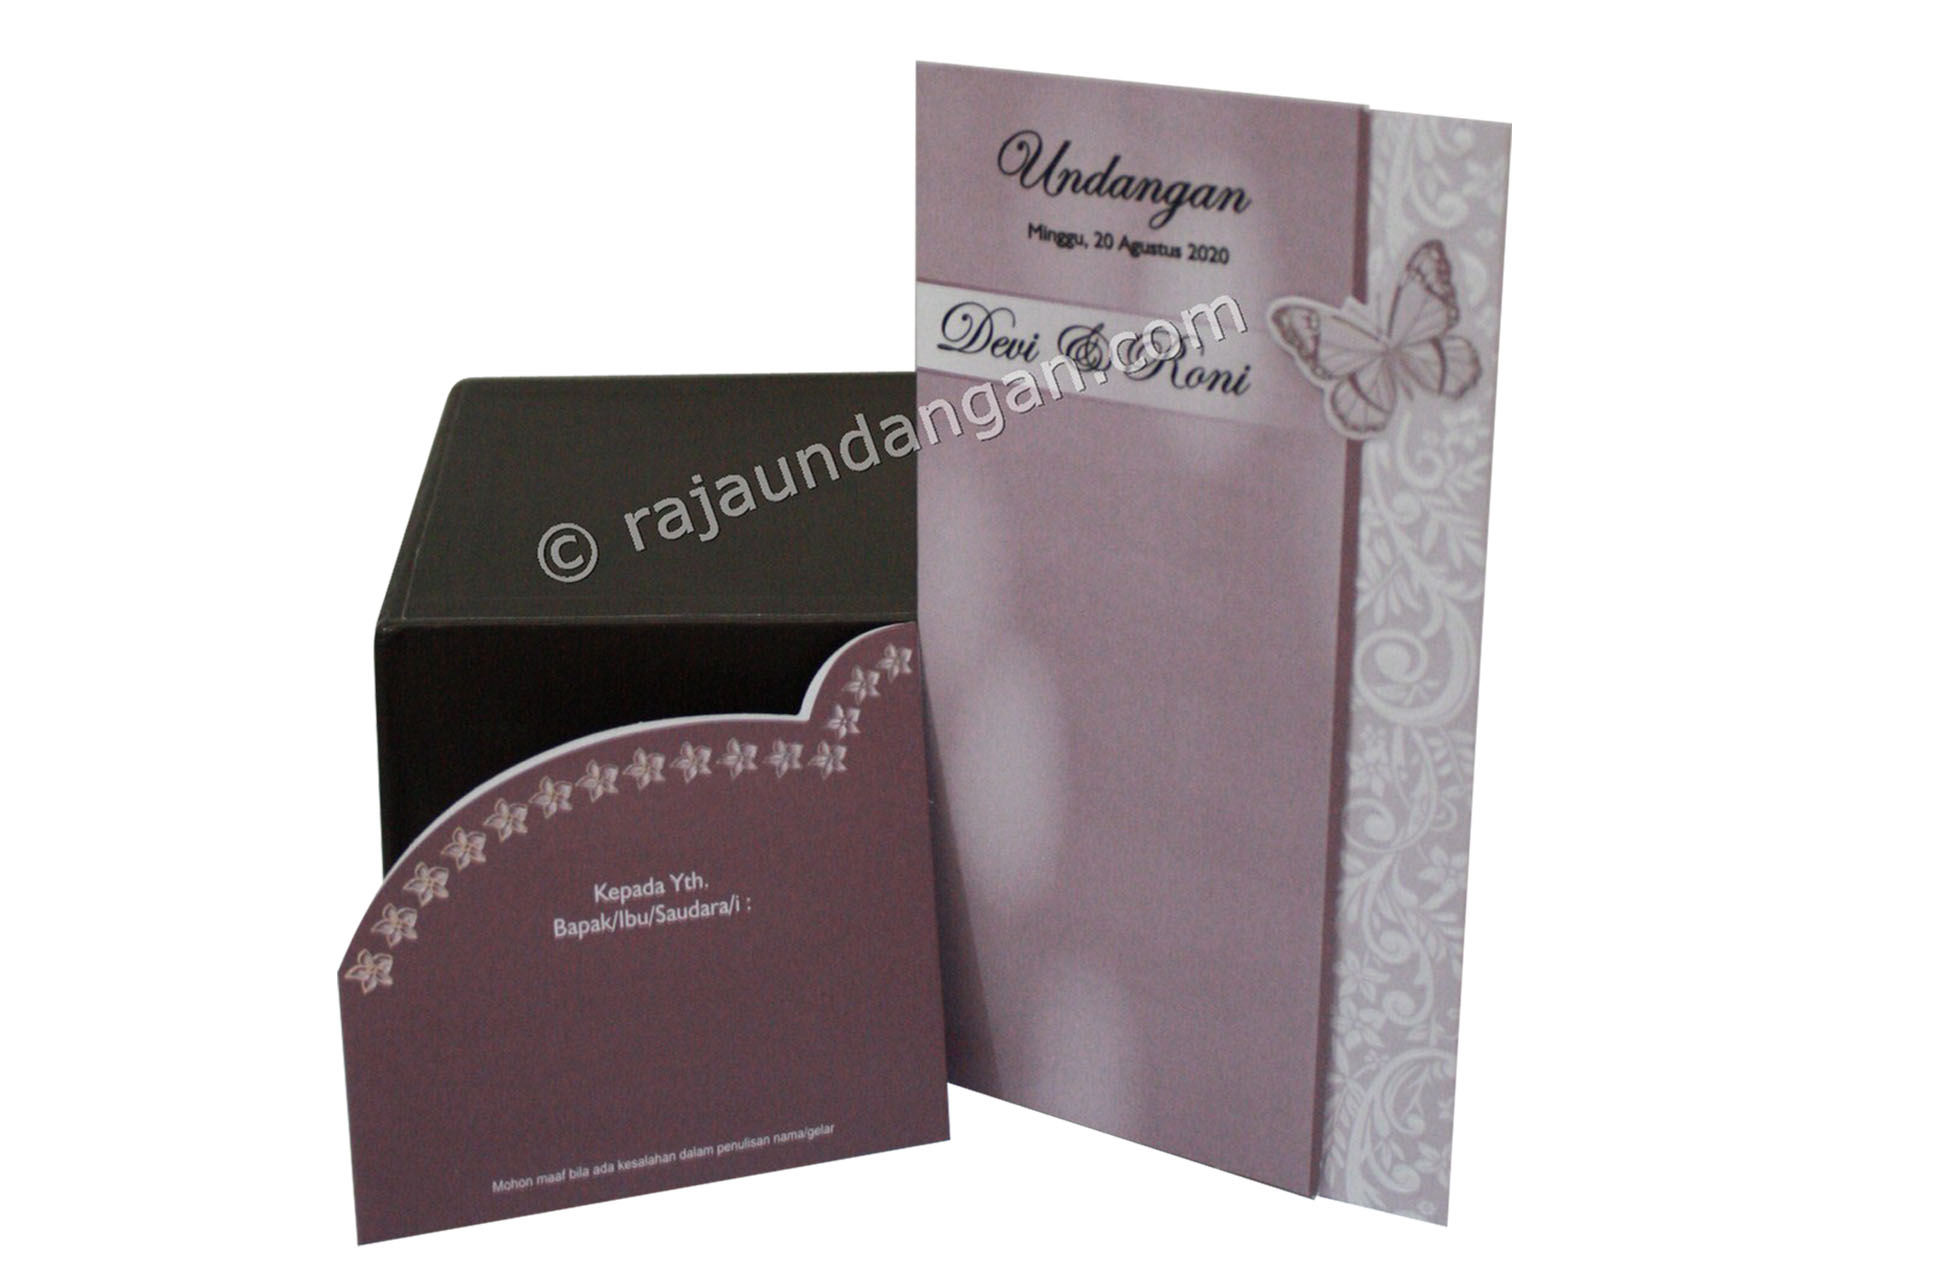 Undangan Pernikahan Softcover Anto dan Ani 3 - Pesan Wedding Invitations Simple di Ploso